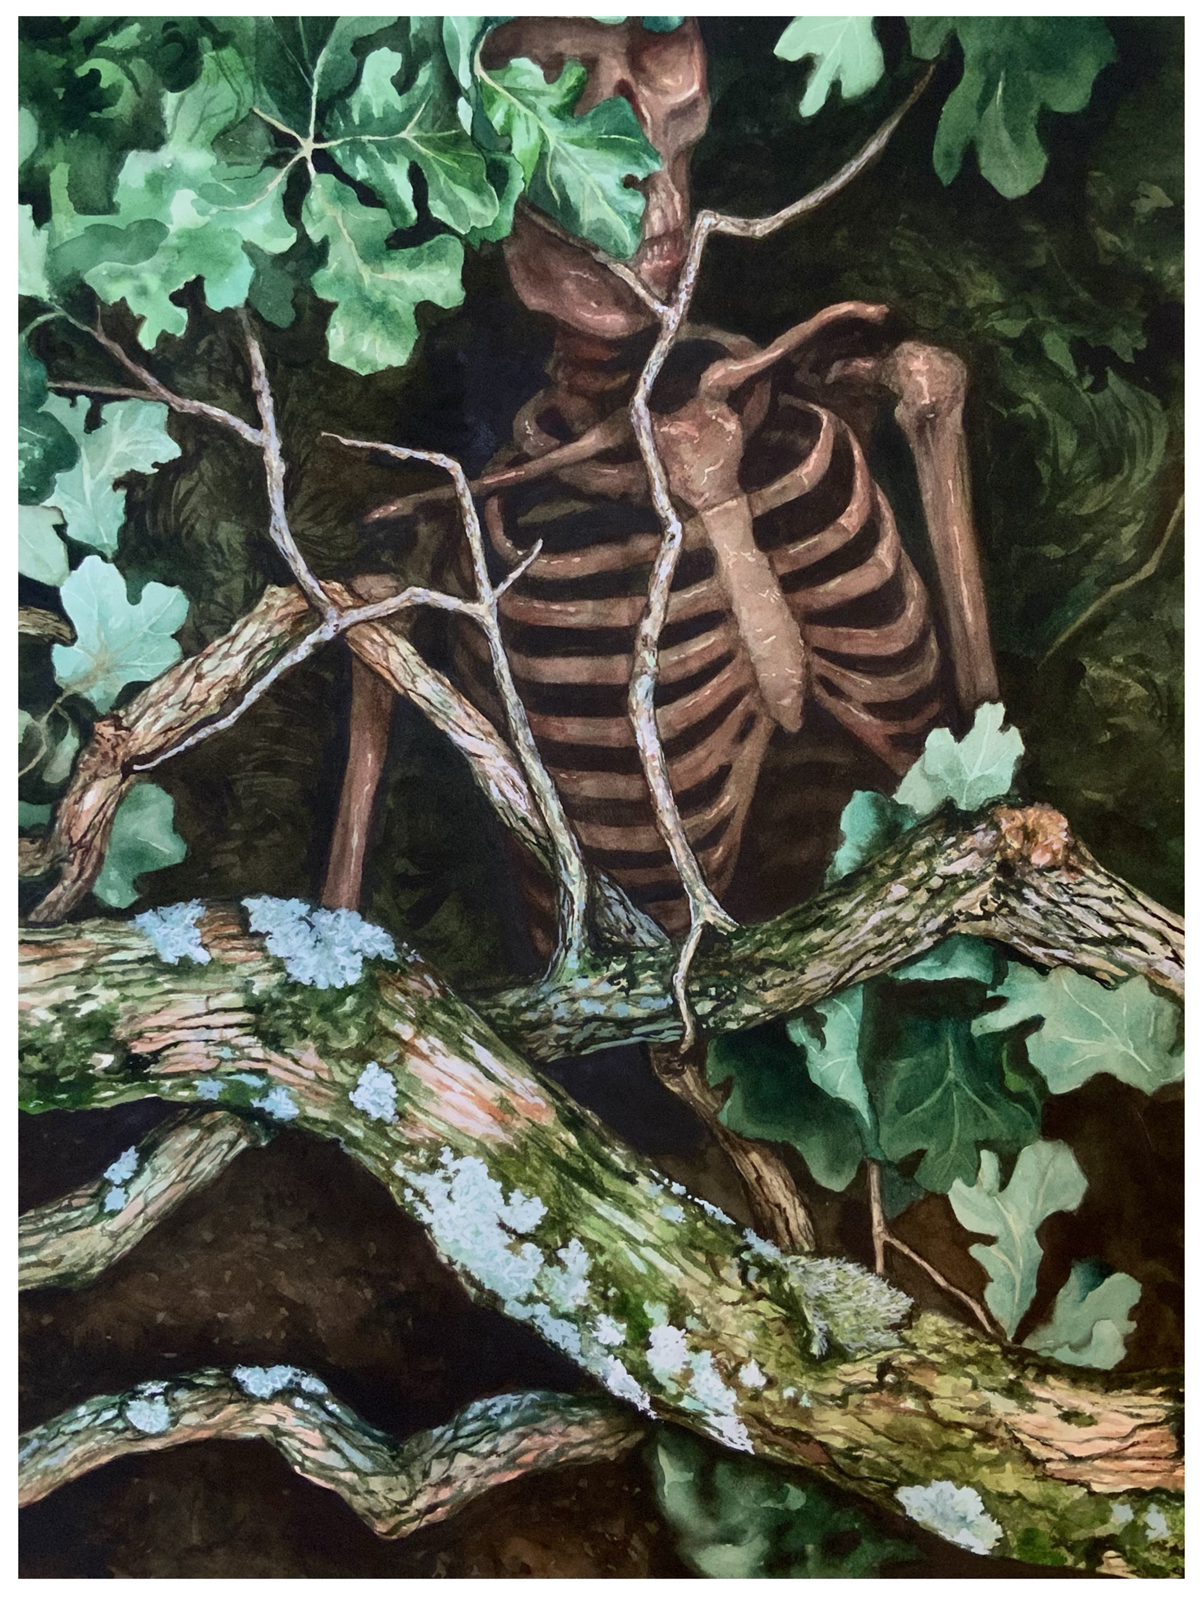 watercolor on paper of the figure of a skeleton submerged in gnarled branches of an oak tree and surrounded by bright green leaves